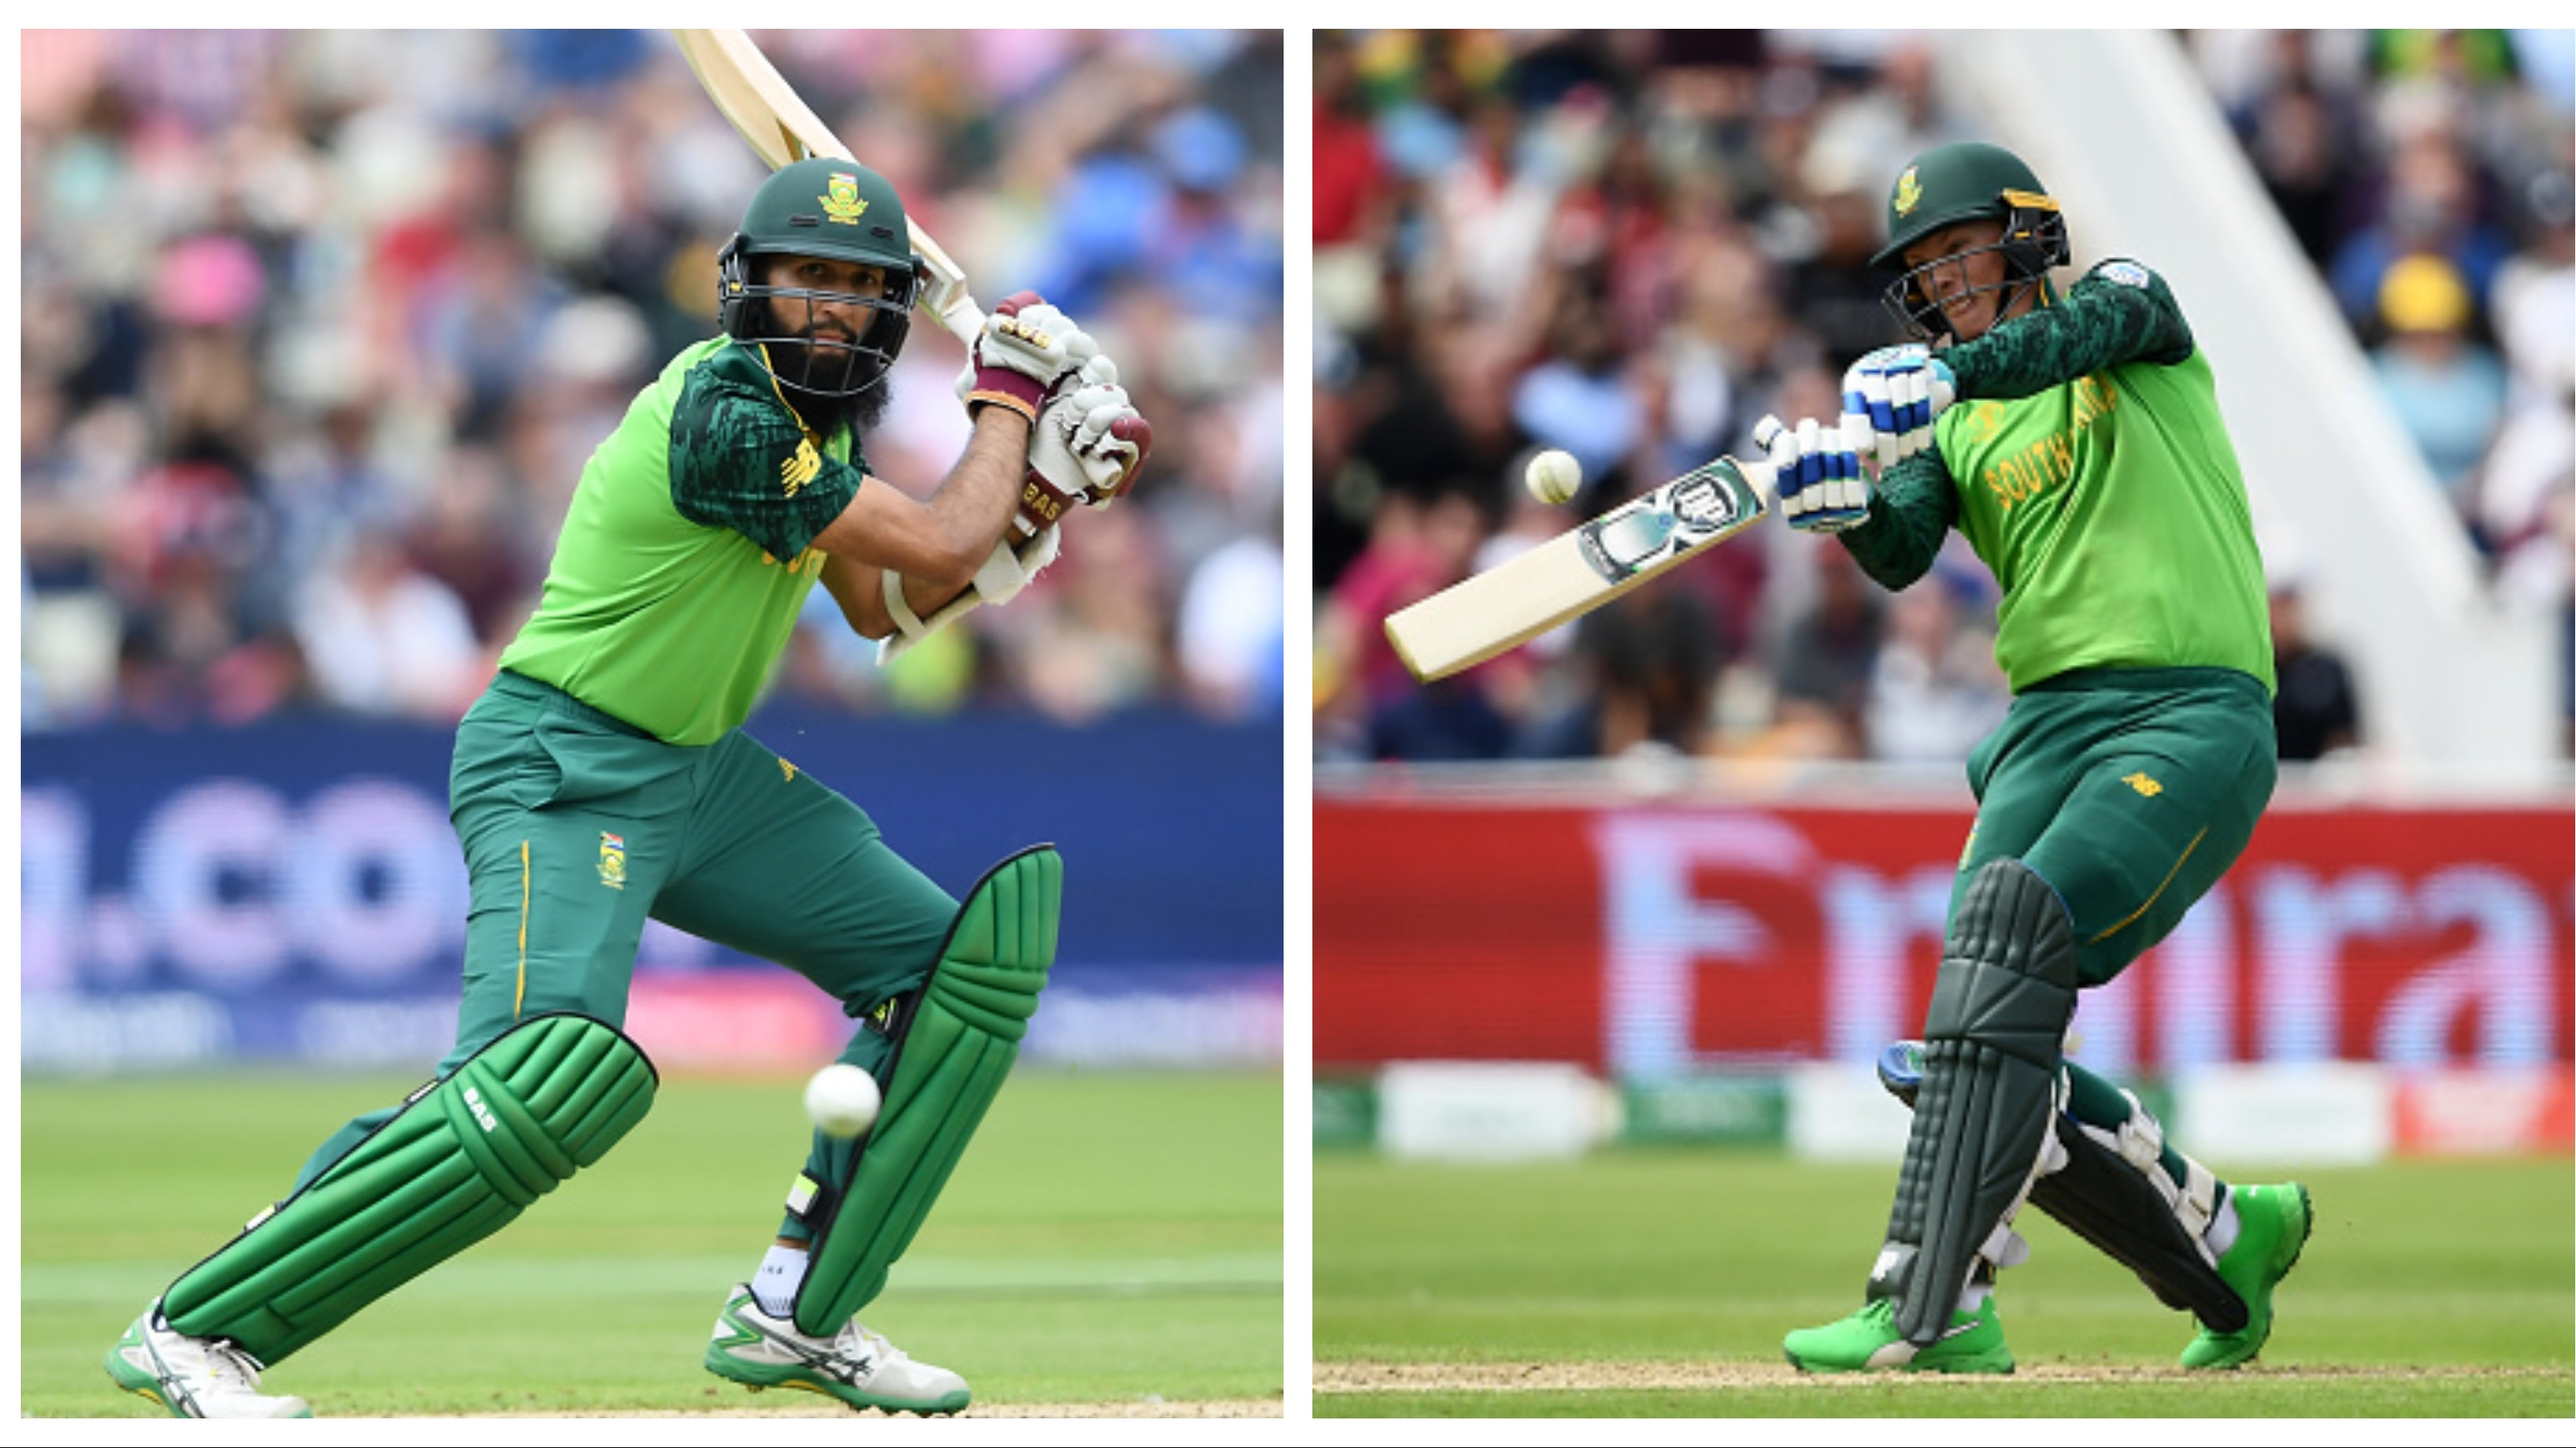 CWC 2019: NZ v SA - Fifties from Hashim Amla and Van der Dussen allow Proteas to post 241/6